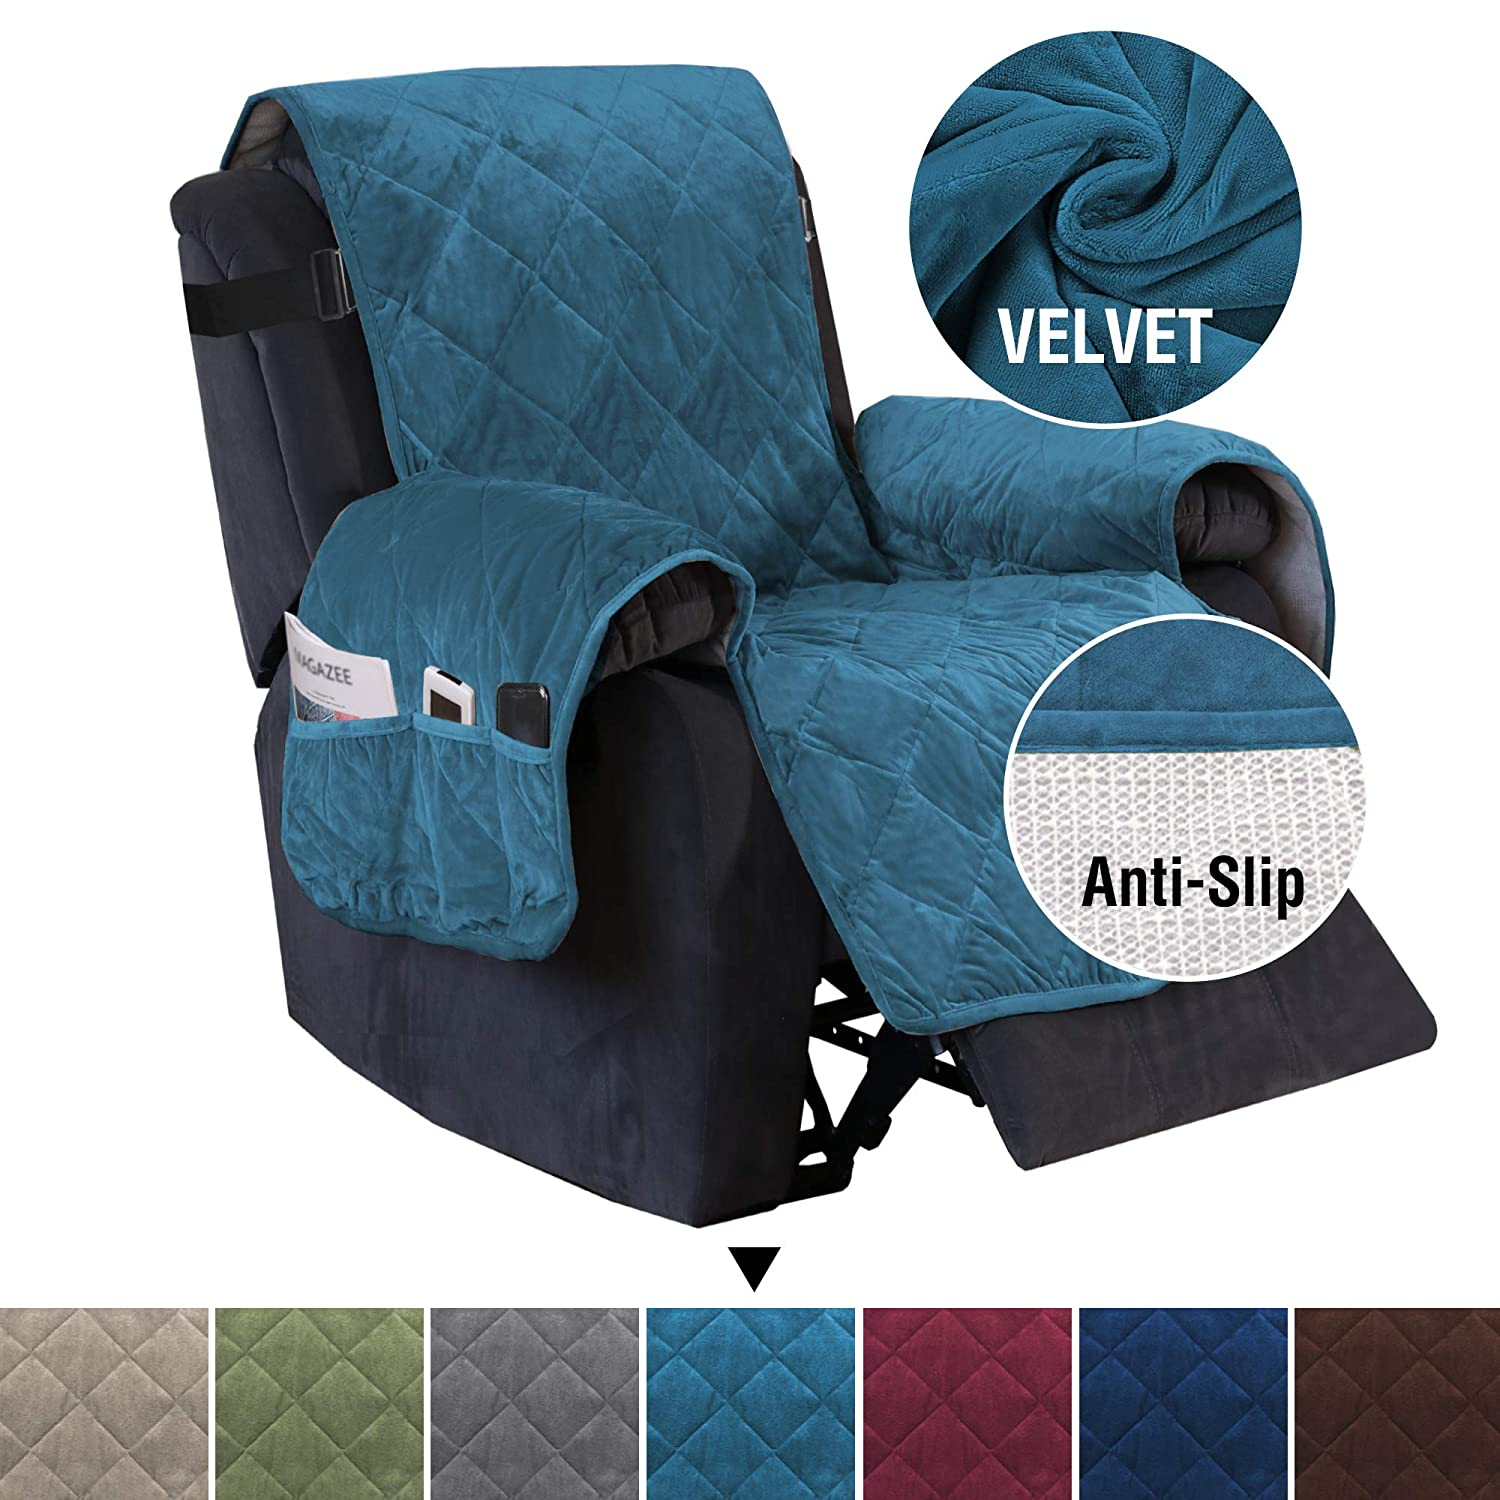 """H.VERSAILTEX Slip Resistant Velvet Recliner Slipcover for Recliner, 2"""" Adjustable Straps Quilted Furniture Protector with Side Pockets, Thick and Soft Quilted Seam Recliner Protector (Peacock Blue)"""